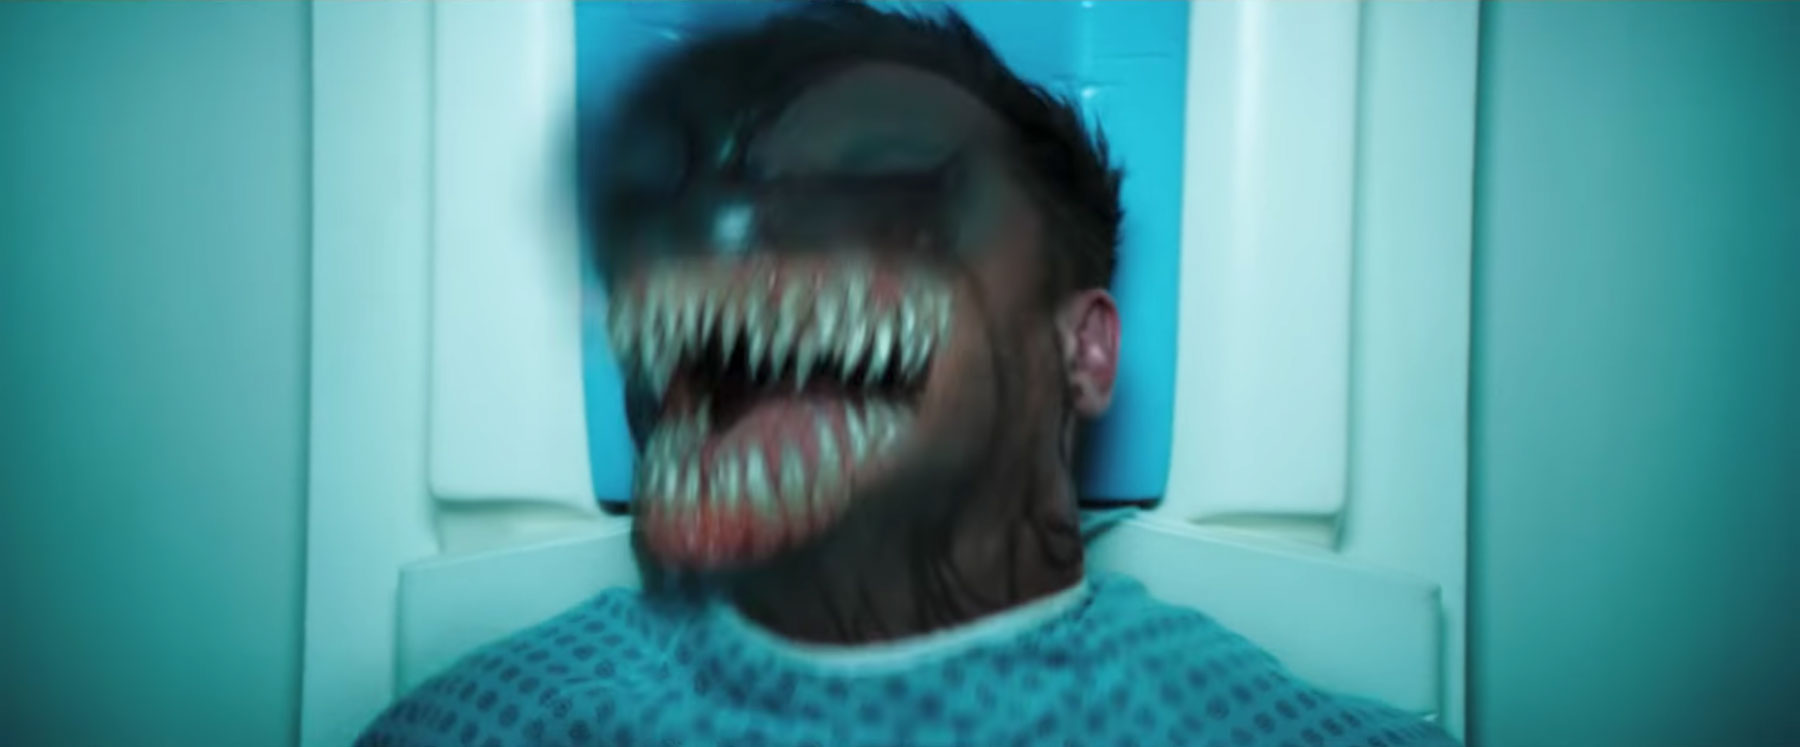 Venom Trailer 2 Gives Us First Full Look At Symbiote Creativesfeed